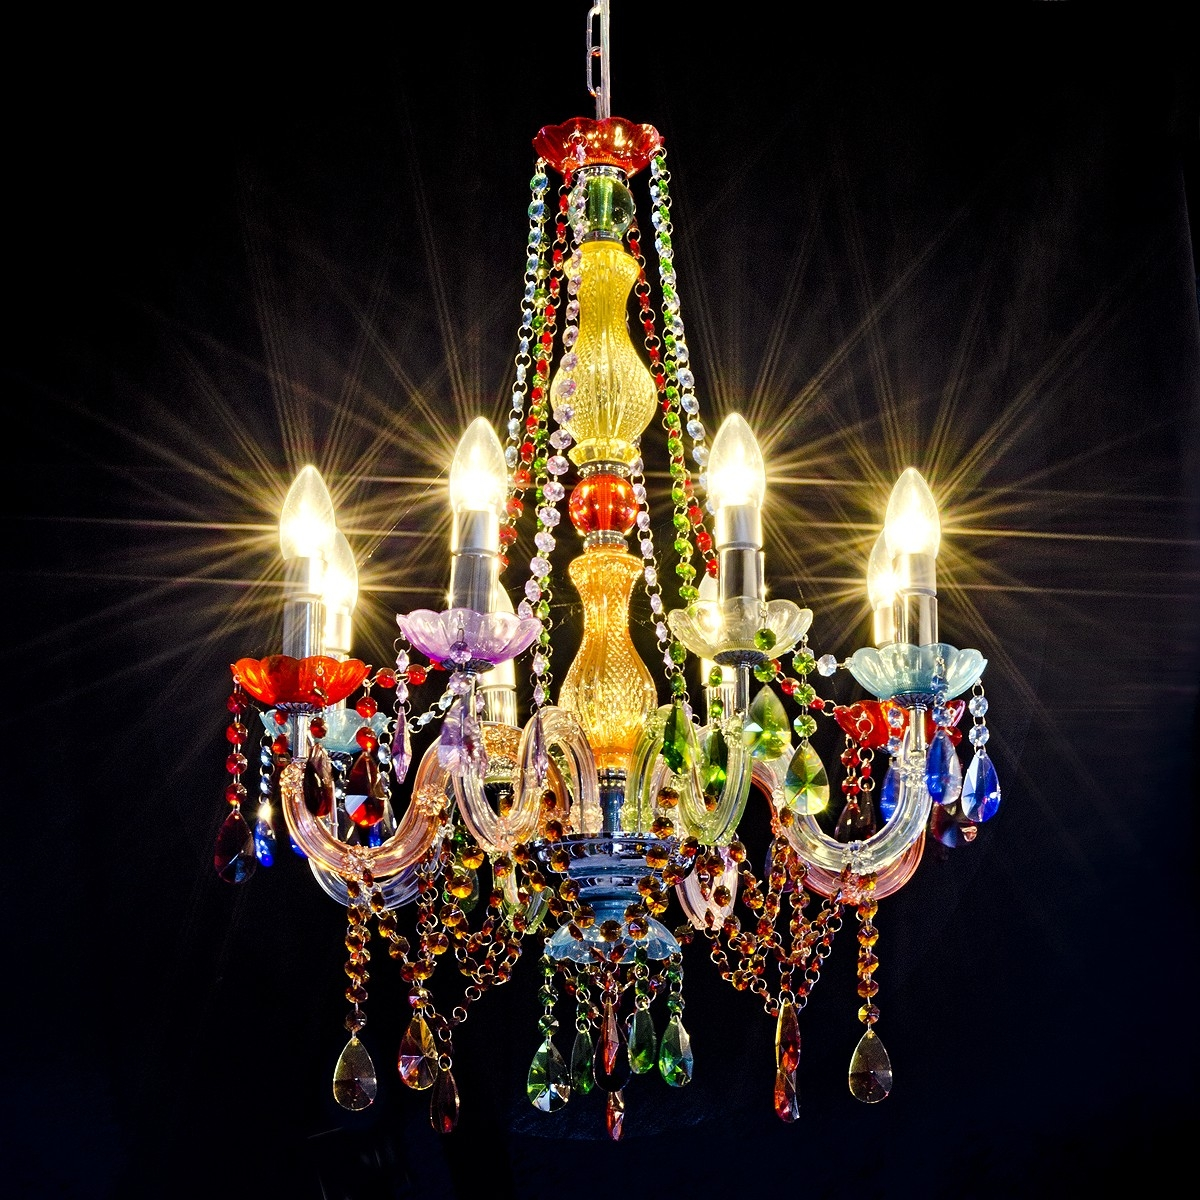 Chandelier Stunning Dining Room Crystal Chandeliers Vintage Inside Coloured Chandeliers (View 11 of 15)